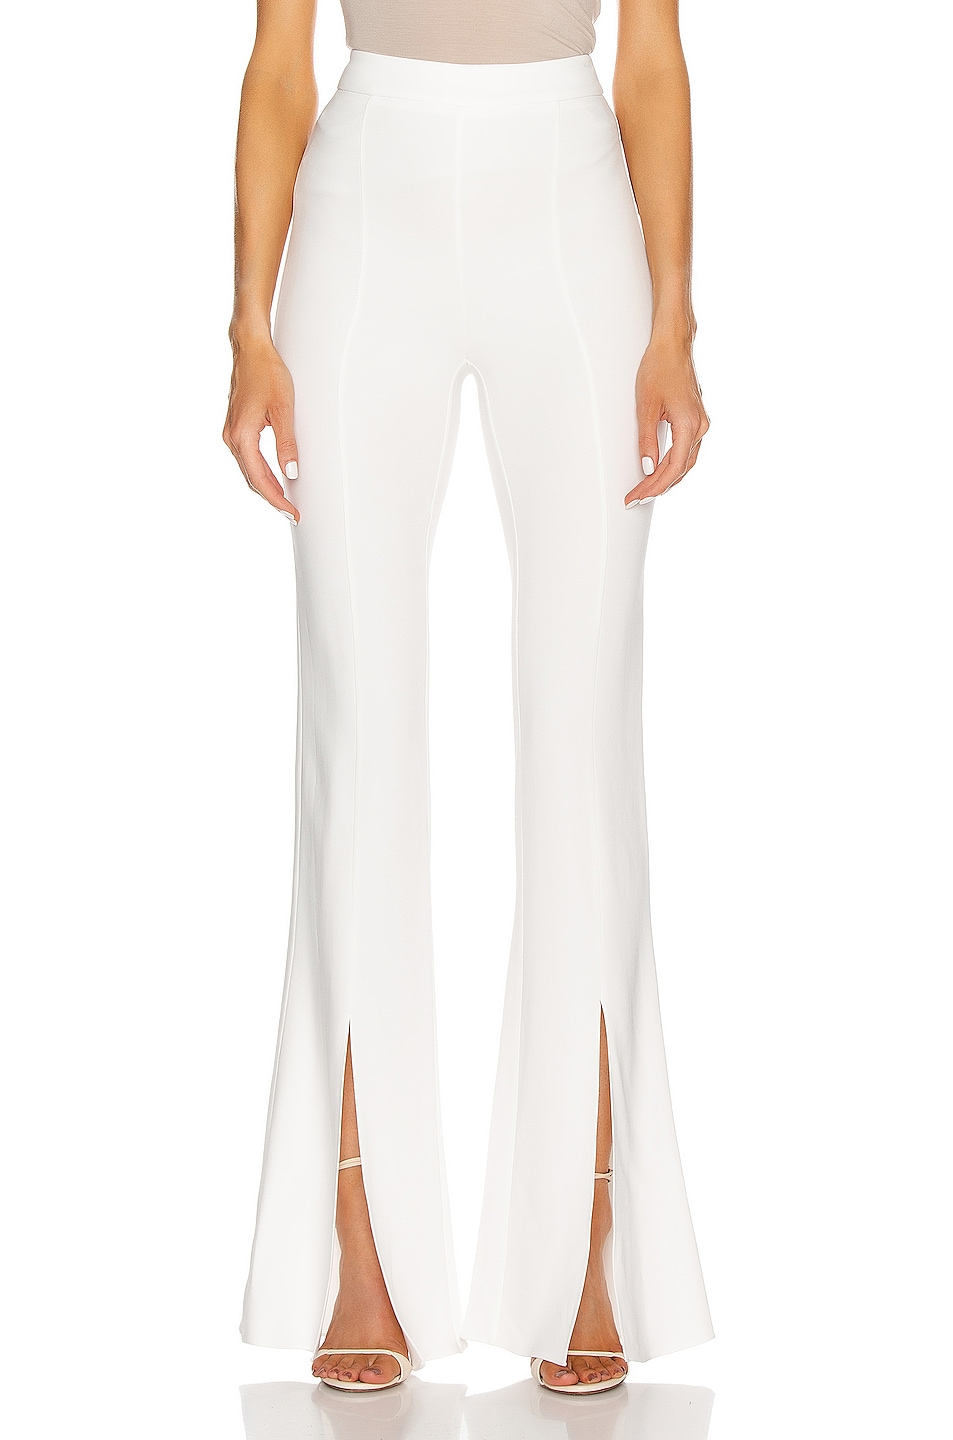 Image 1 of Cushnie High Waisted Slim Flare Pant in White